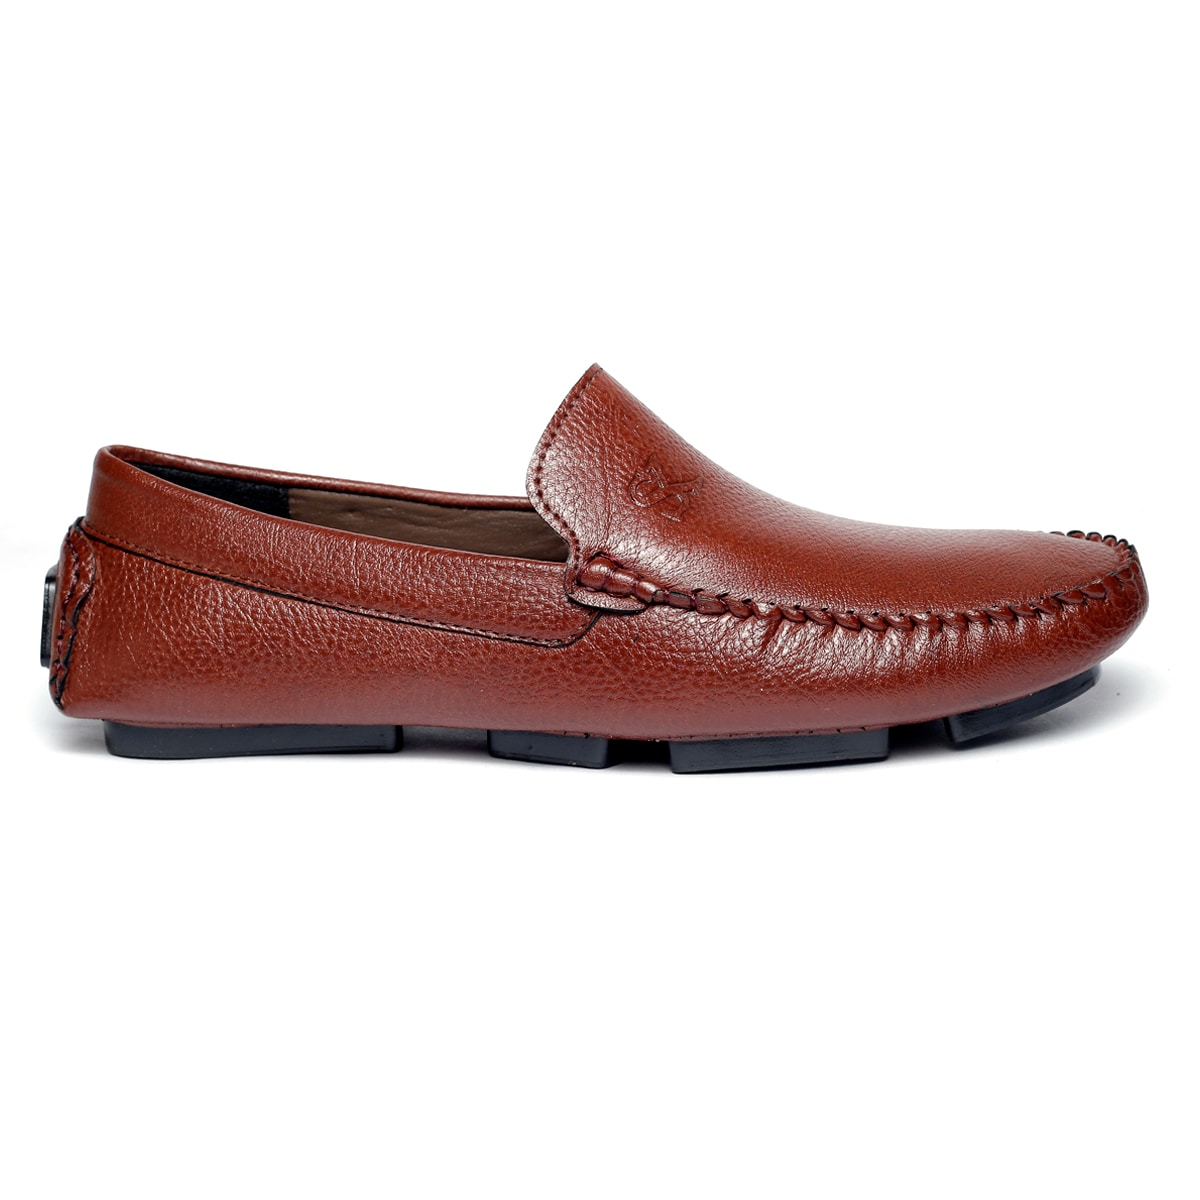 JK PORT COMFORTABLE, FASHIONABLE AND TRENDY LOAFERS JKPLF044BRN (BROWN,6-10,8 PAIR)